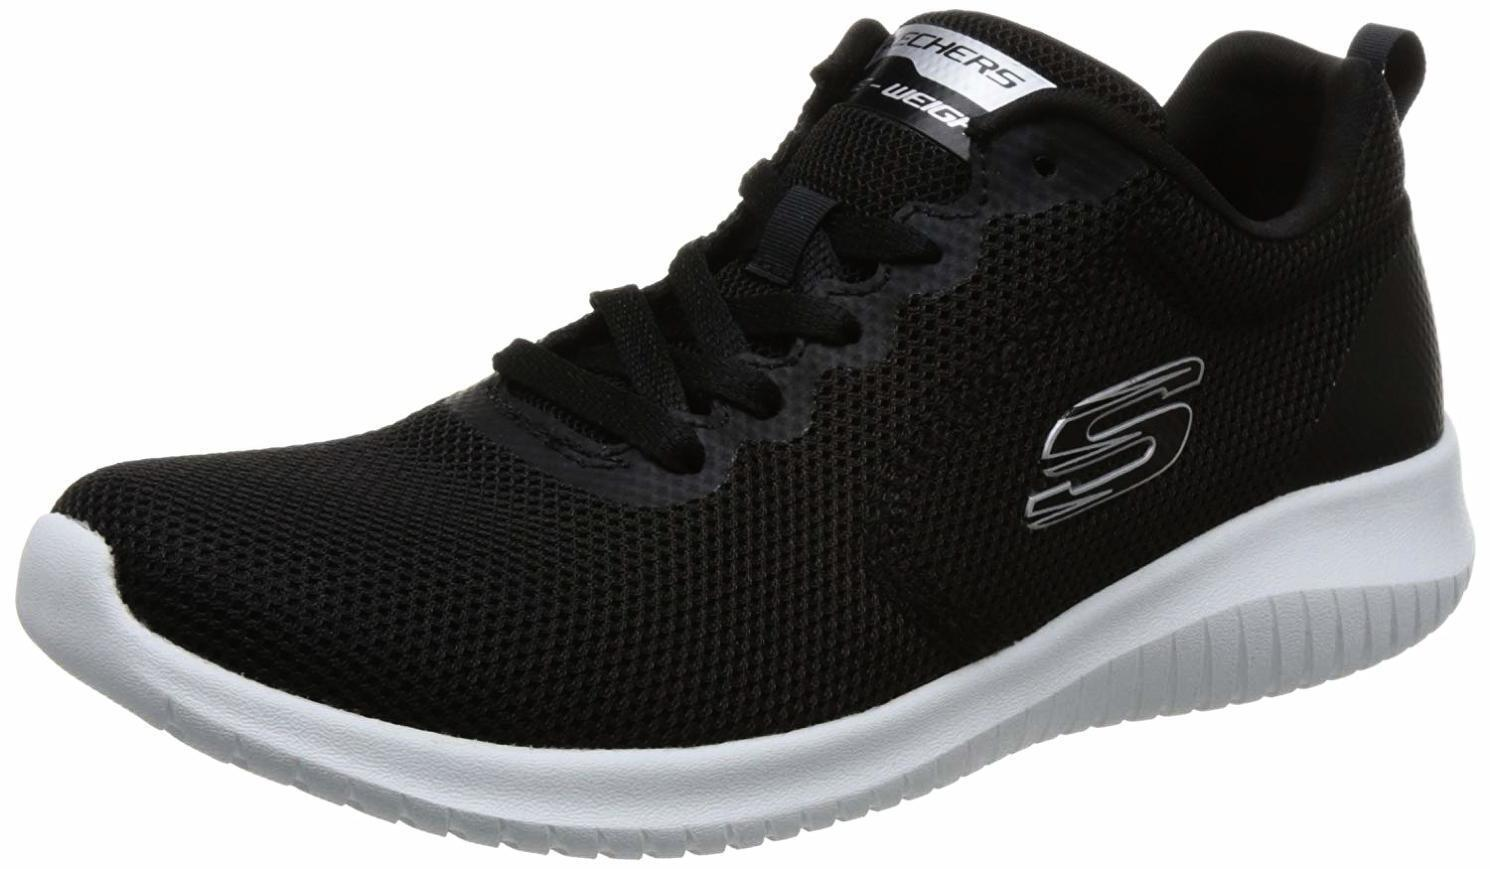 Skechers Ultra Ultra Ultra Flex Free Spirits 12846 Black White Womens Light shoes f8b2e6